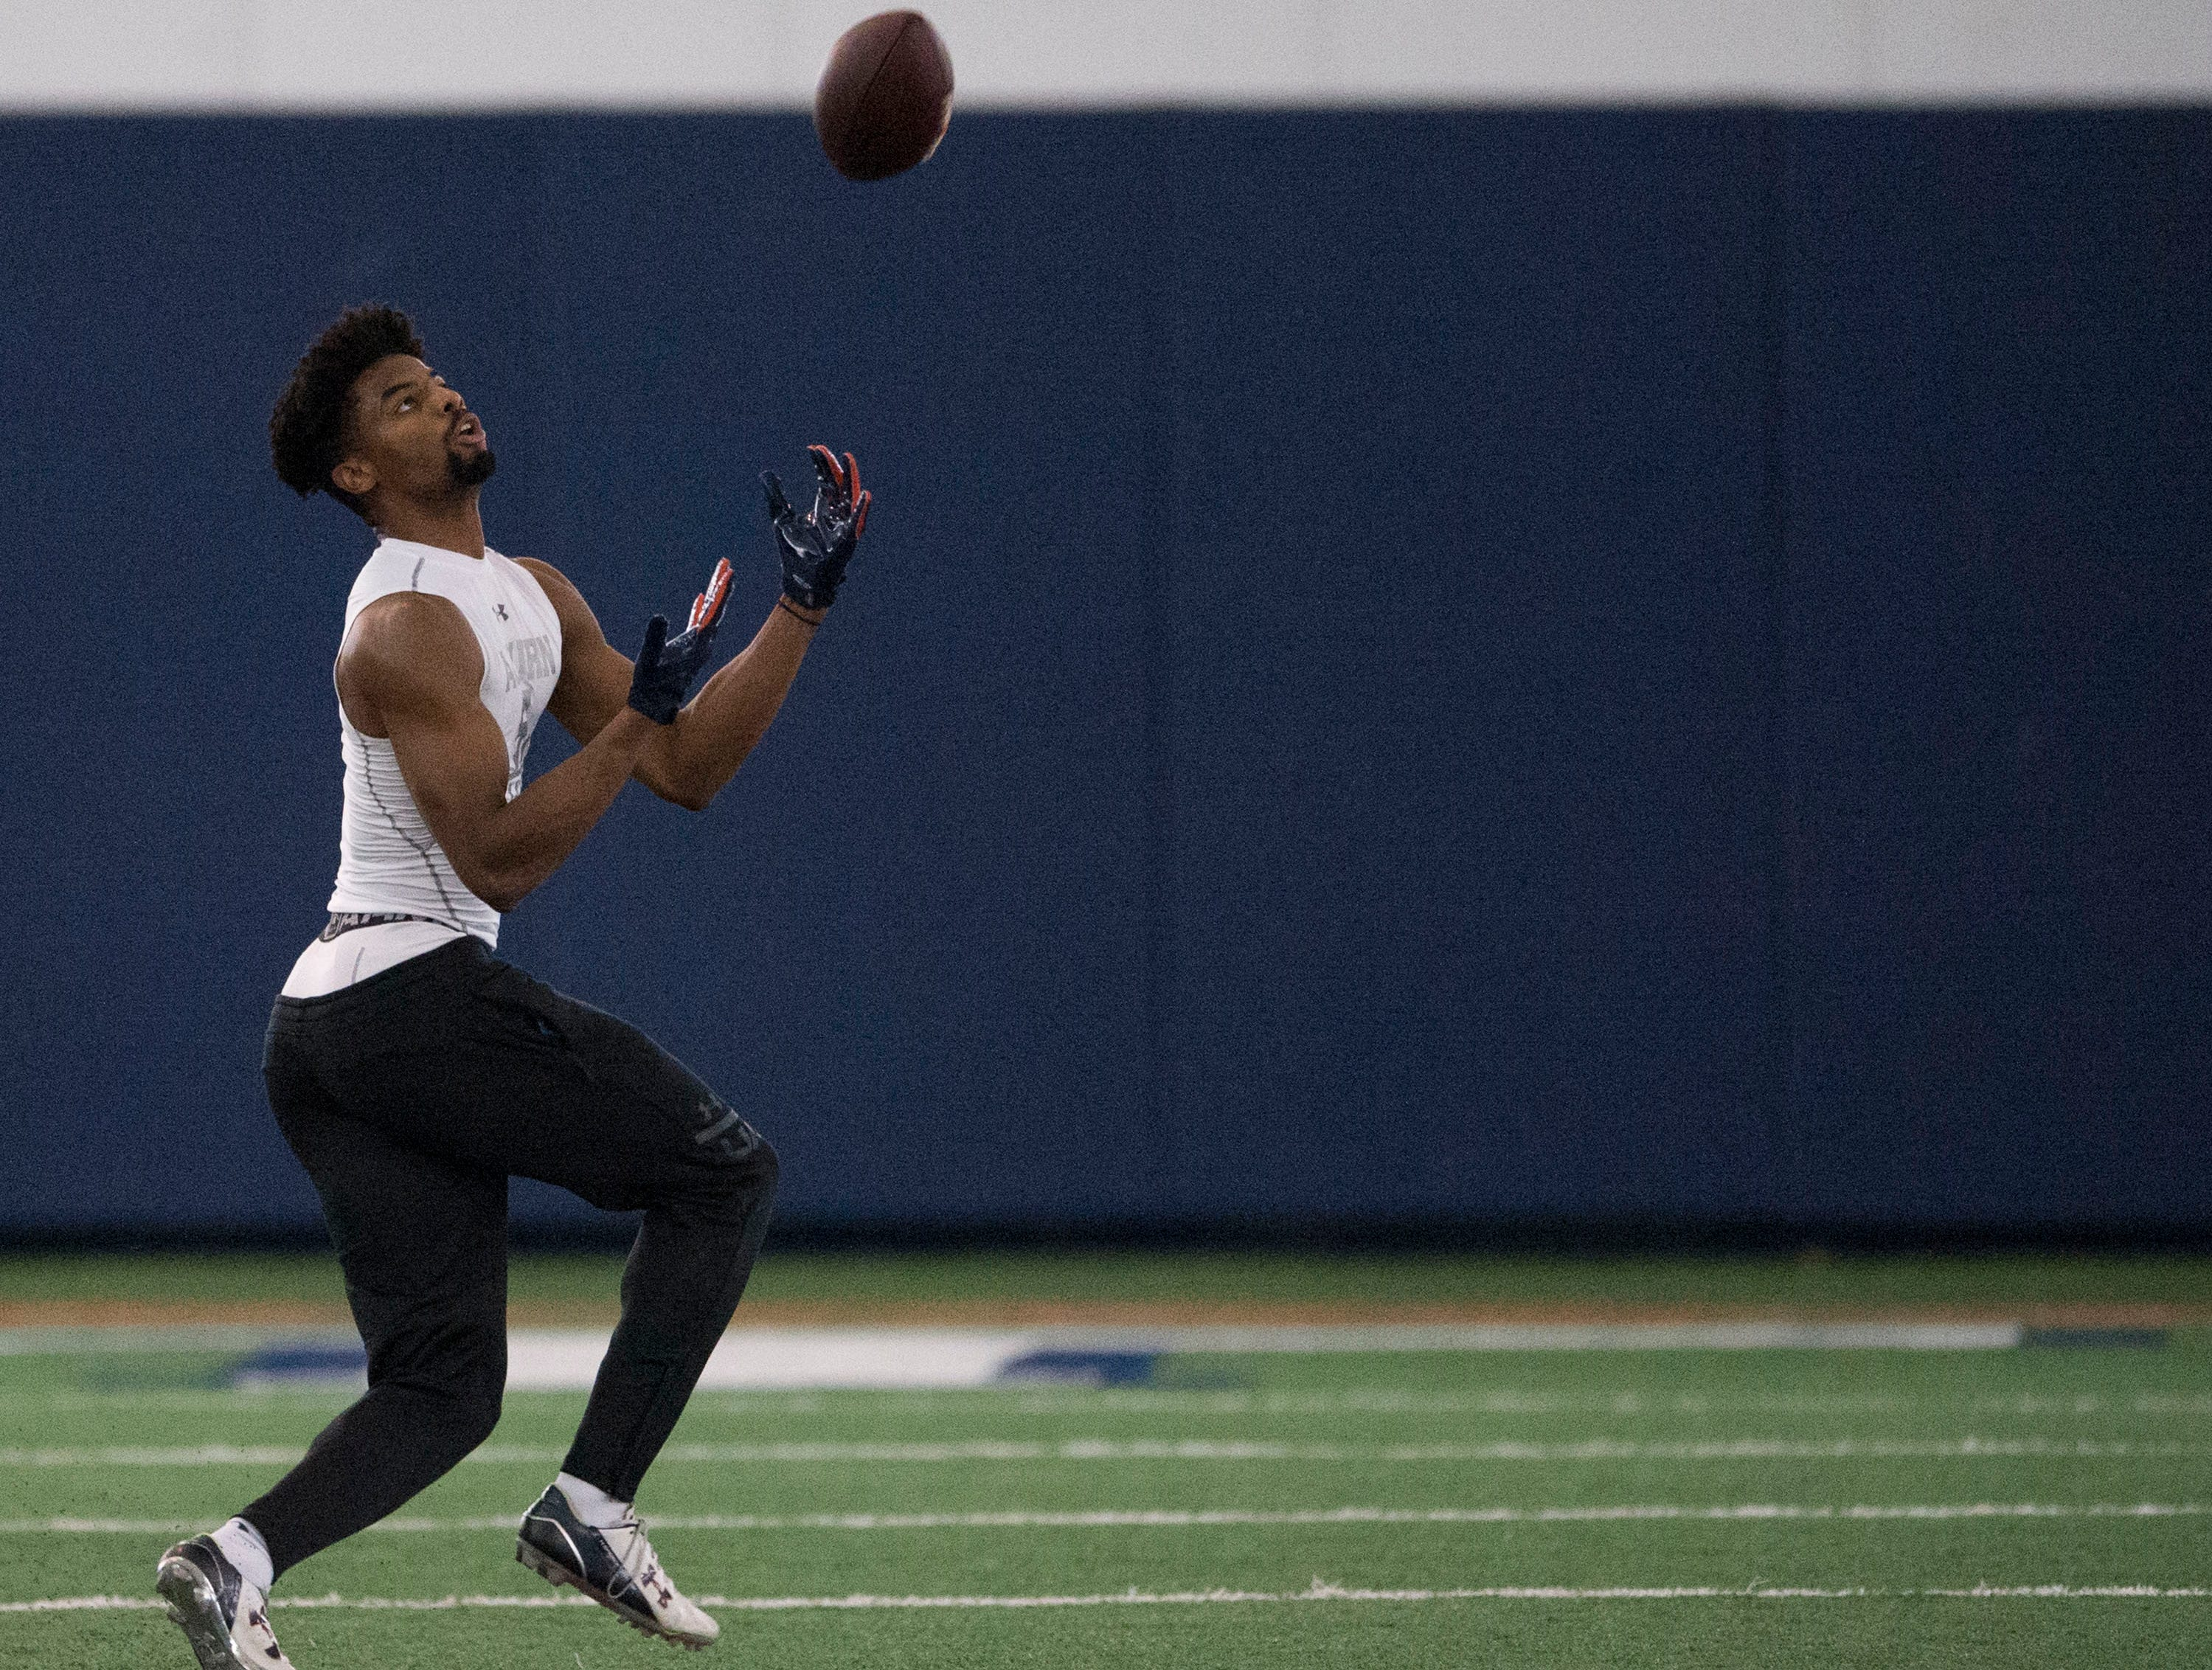 Auburn wide receiver Darius Slayton (81) catches the ball as he runs a drill during pro day at Auburn Athletic Complex in Auburn, Ala., on Friday, March 8, 2019.